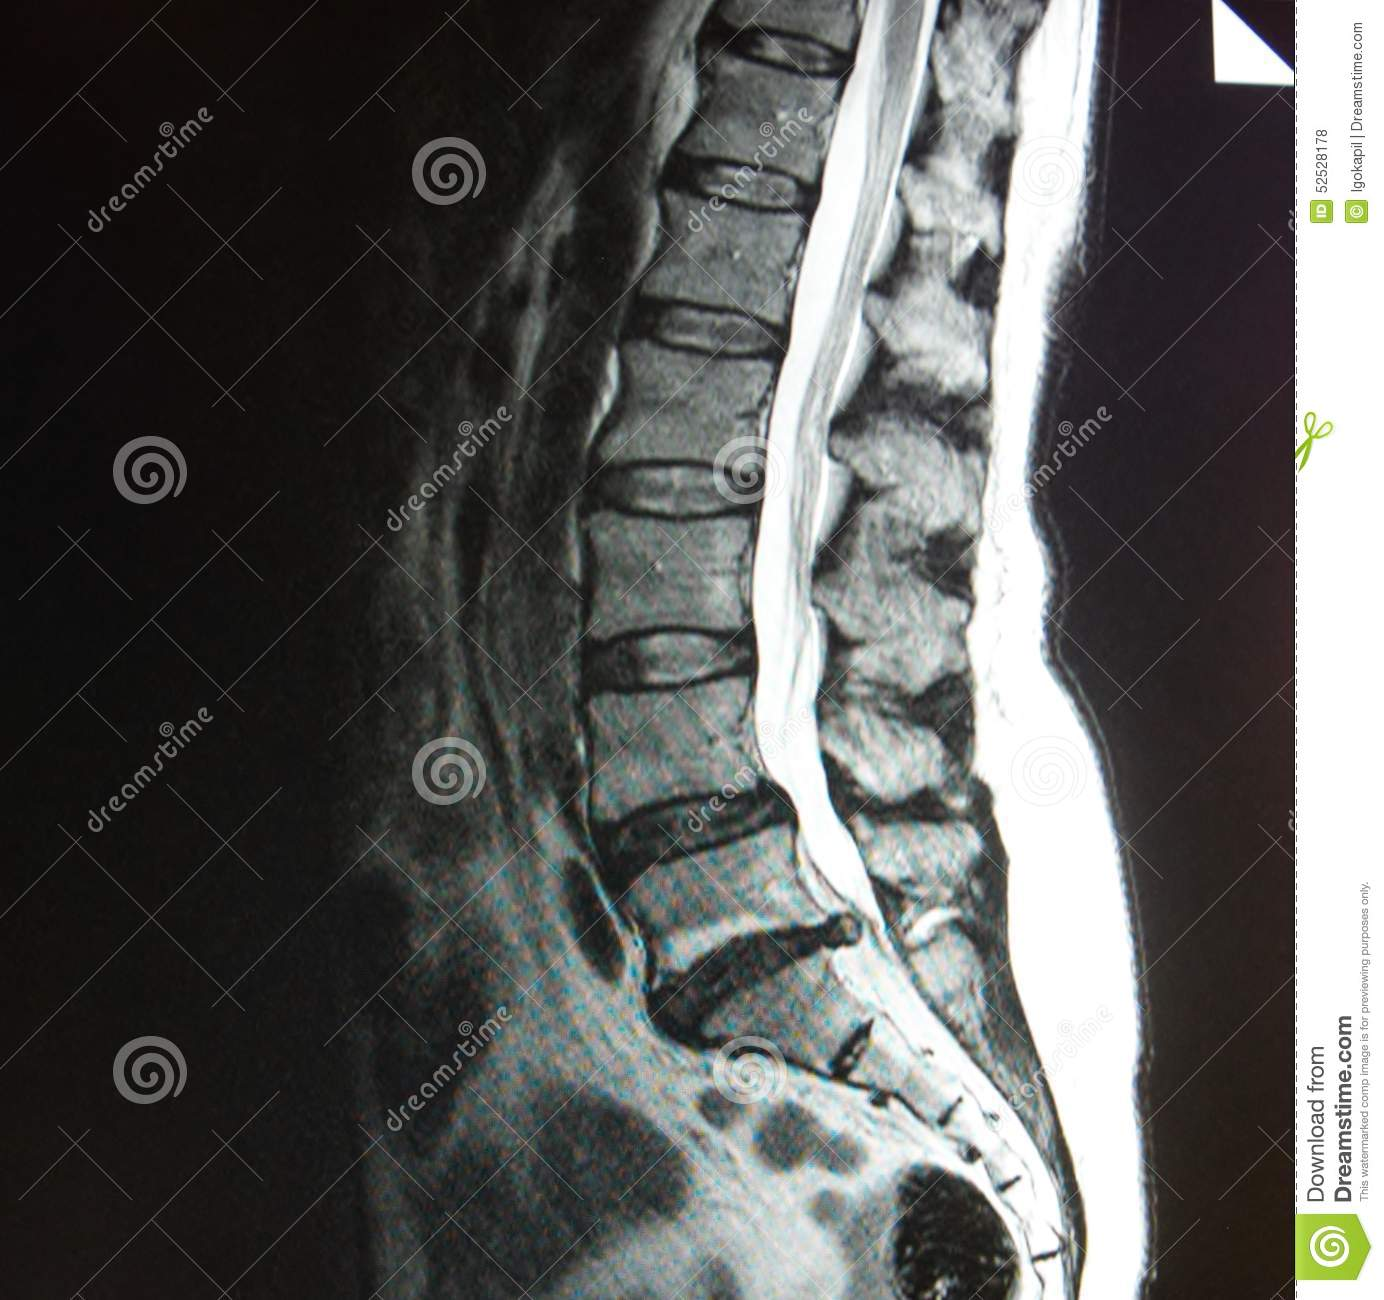 Mri Of Lumbar Spine Stenosis Stock Photo - Image of diagnostic ...